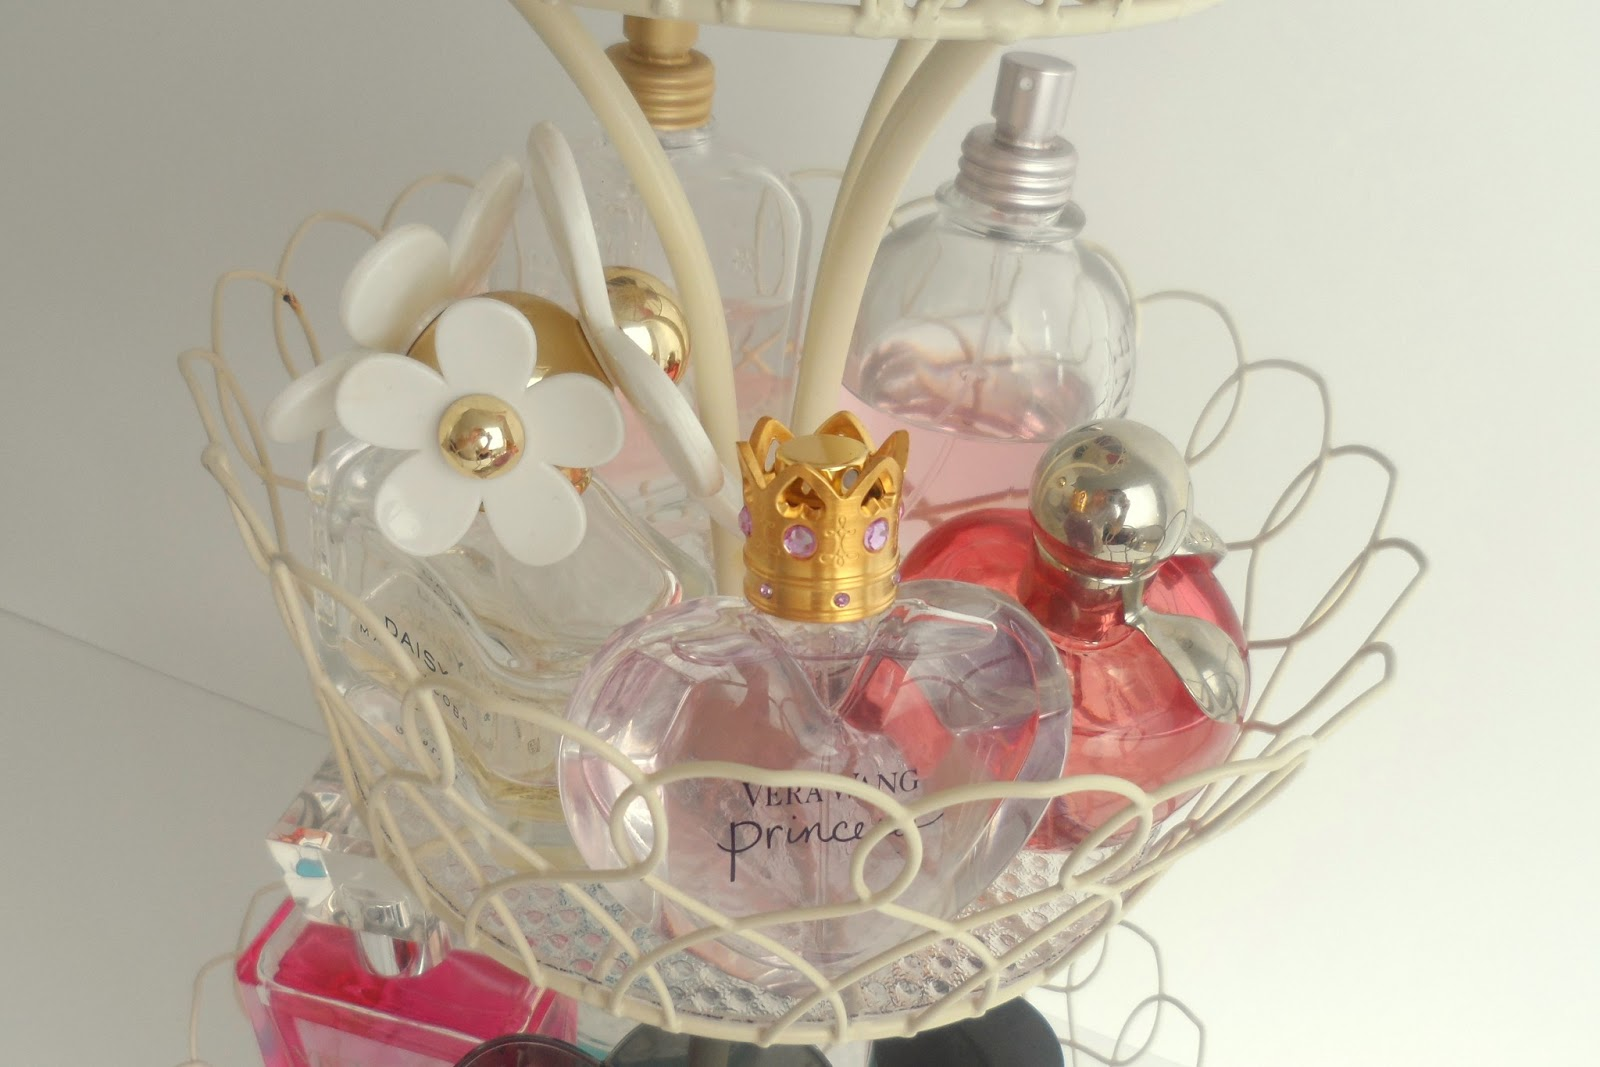 Diy+perfume+storage+rack+stand+cake+fruit+wire+favourite+perfumes+collection+marc+jacobs+daisy+dot+lola+eau+so+fresh+vera+wang+princess+victoria+secret+angel+jadore+nina+ricci+blog+blogger+%25285%2529